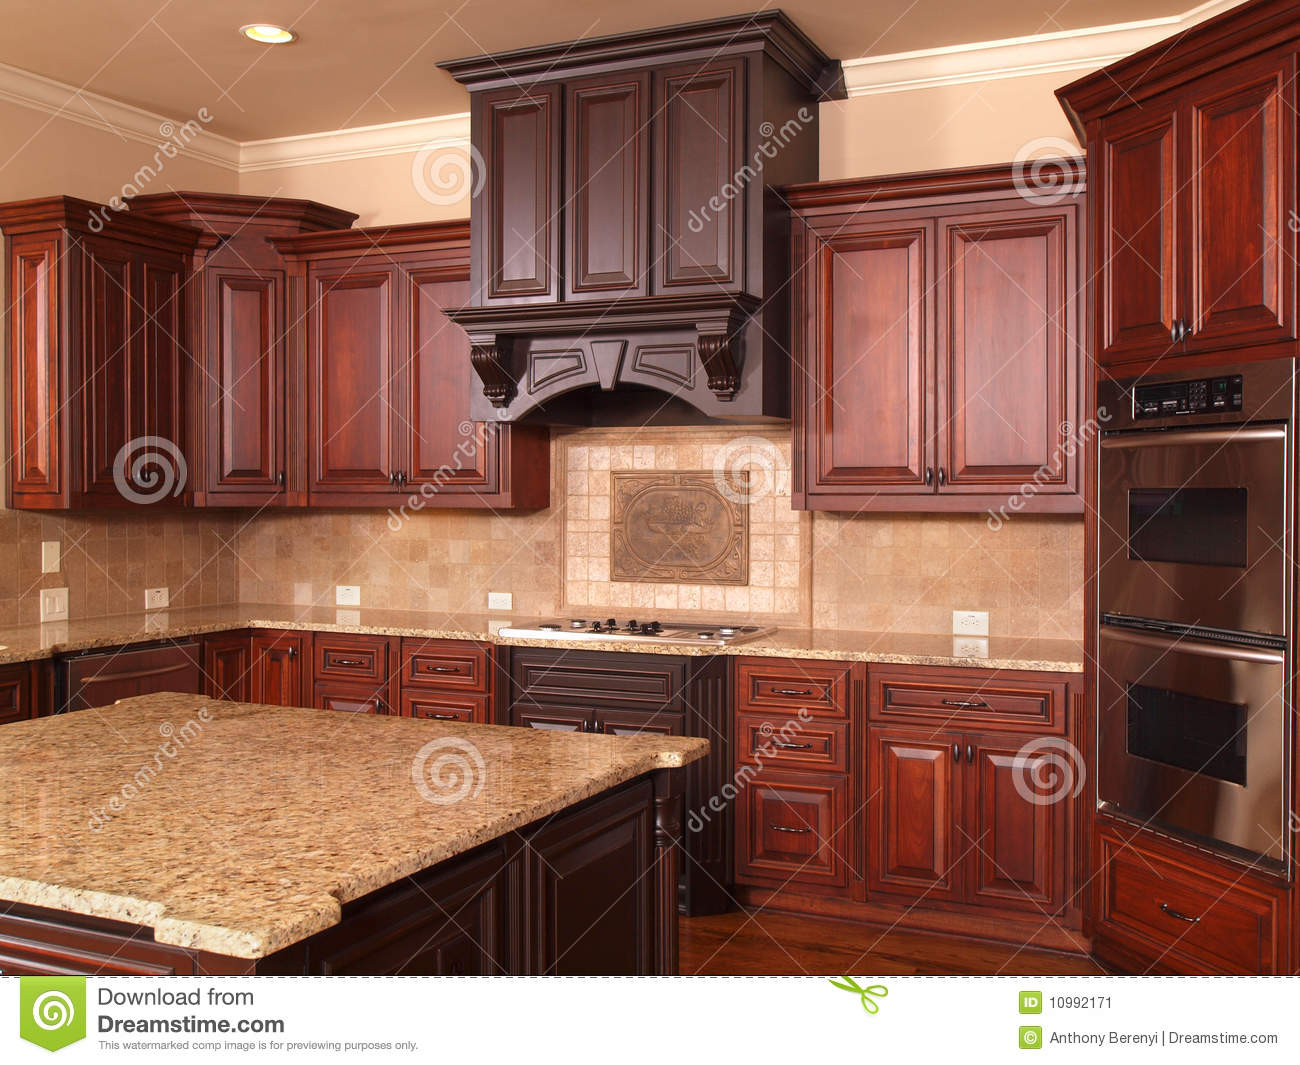 Luxury Home Kitchen Center Island Stock Image - Image of ...